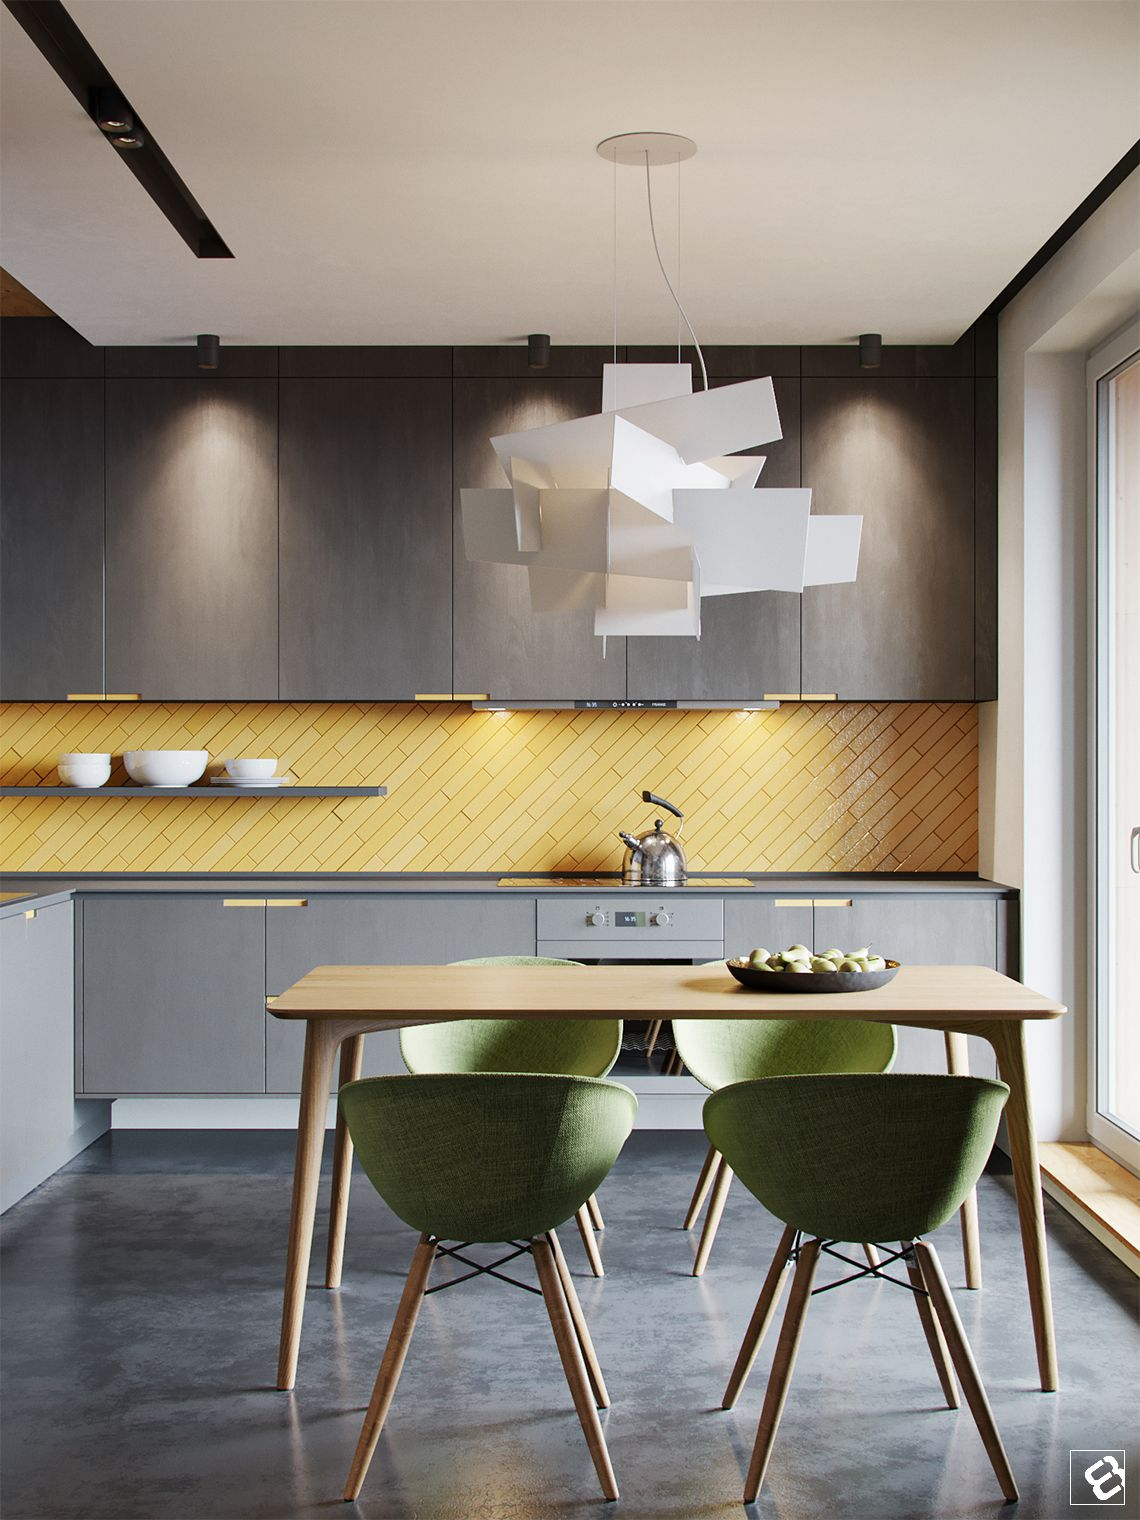 Best Modern Interior With Plywood Decor Elements Kitchen Flooring 400 x 300